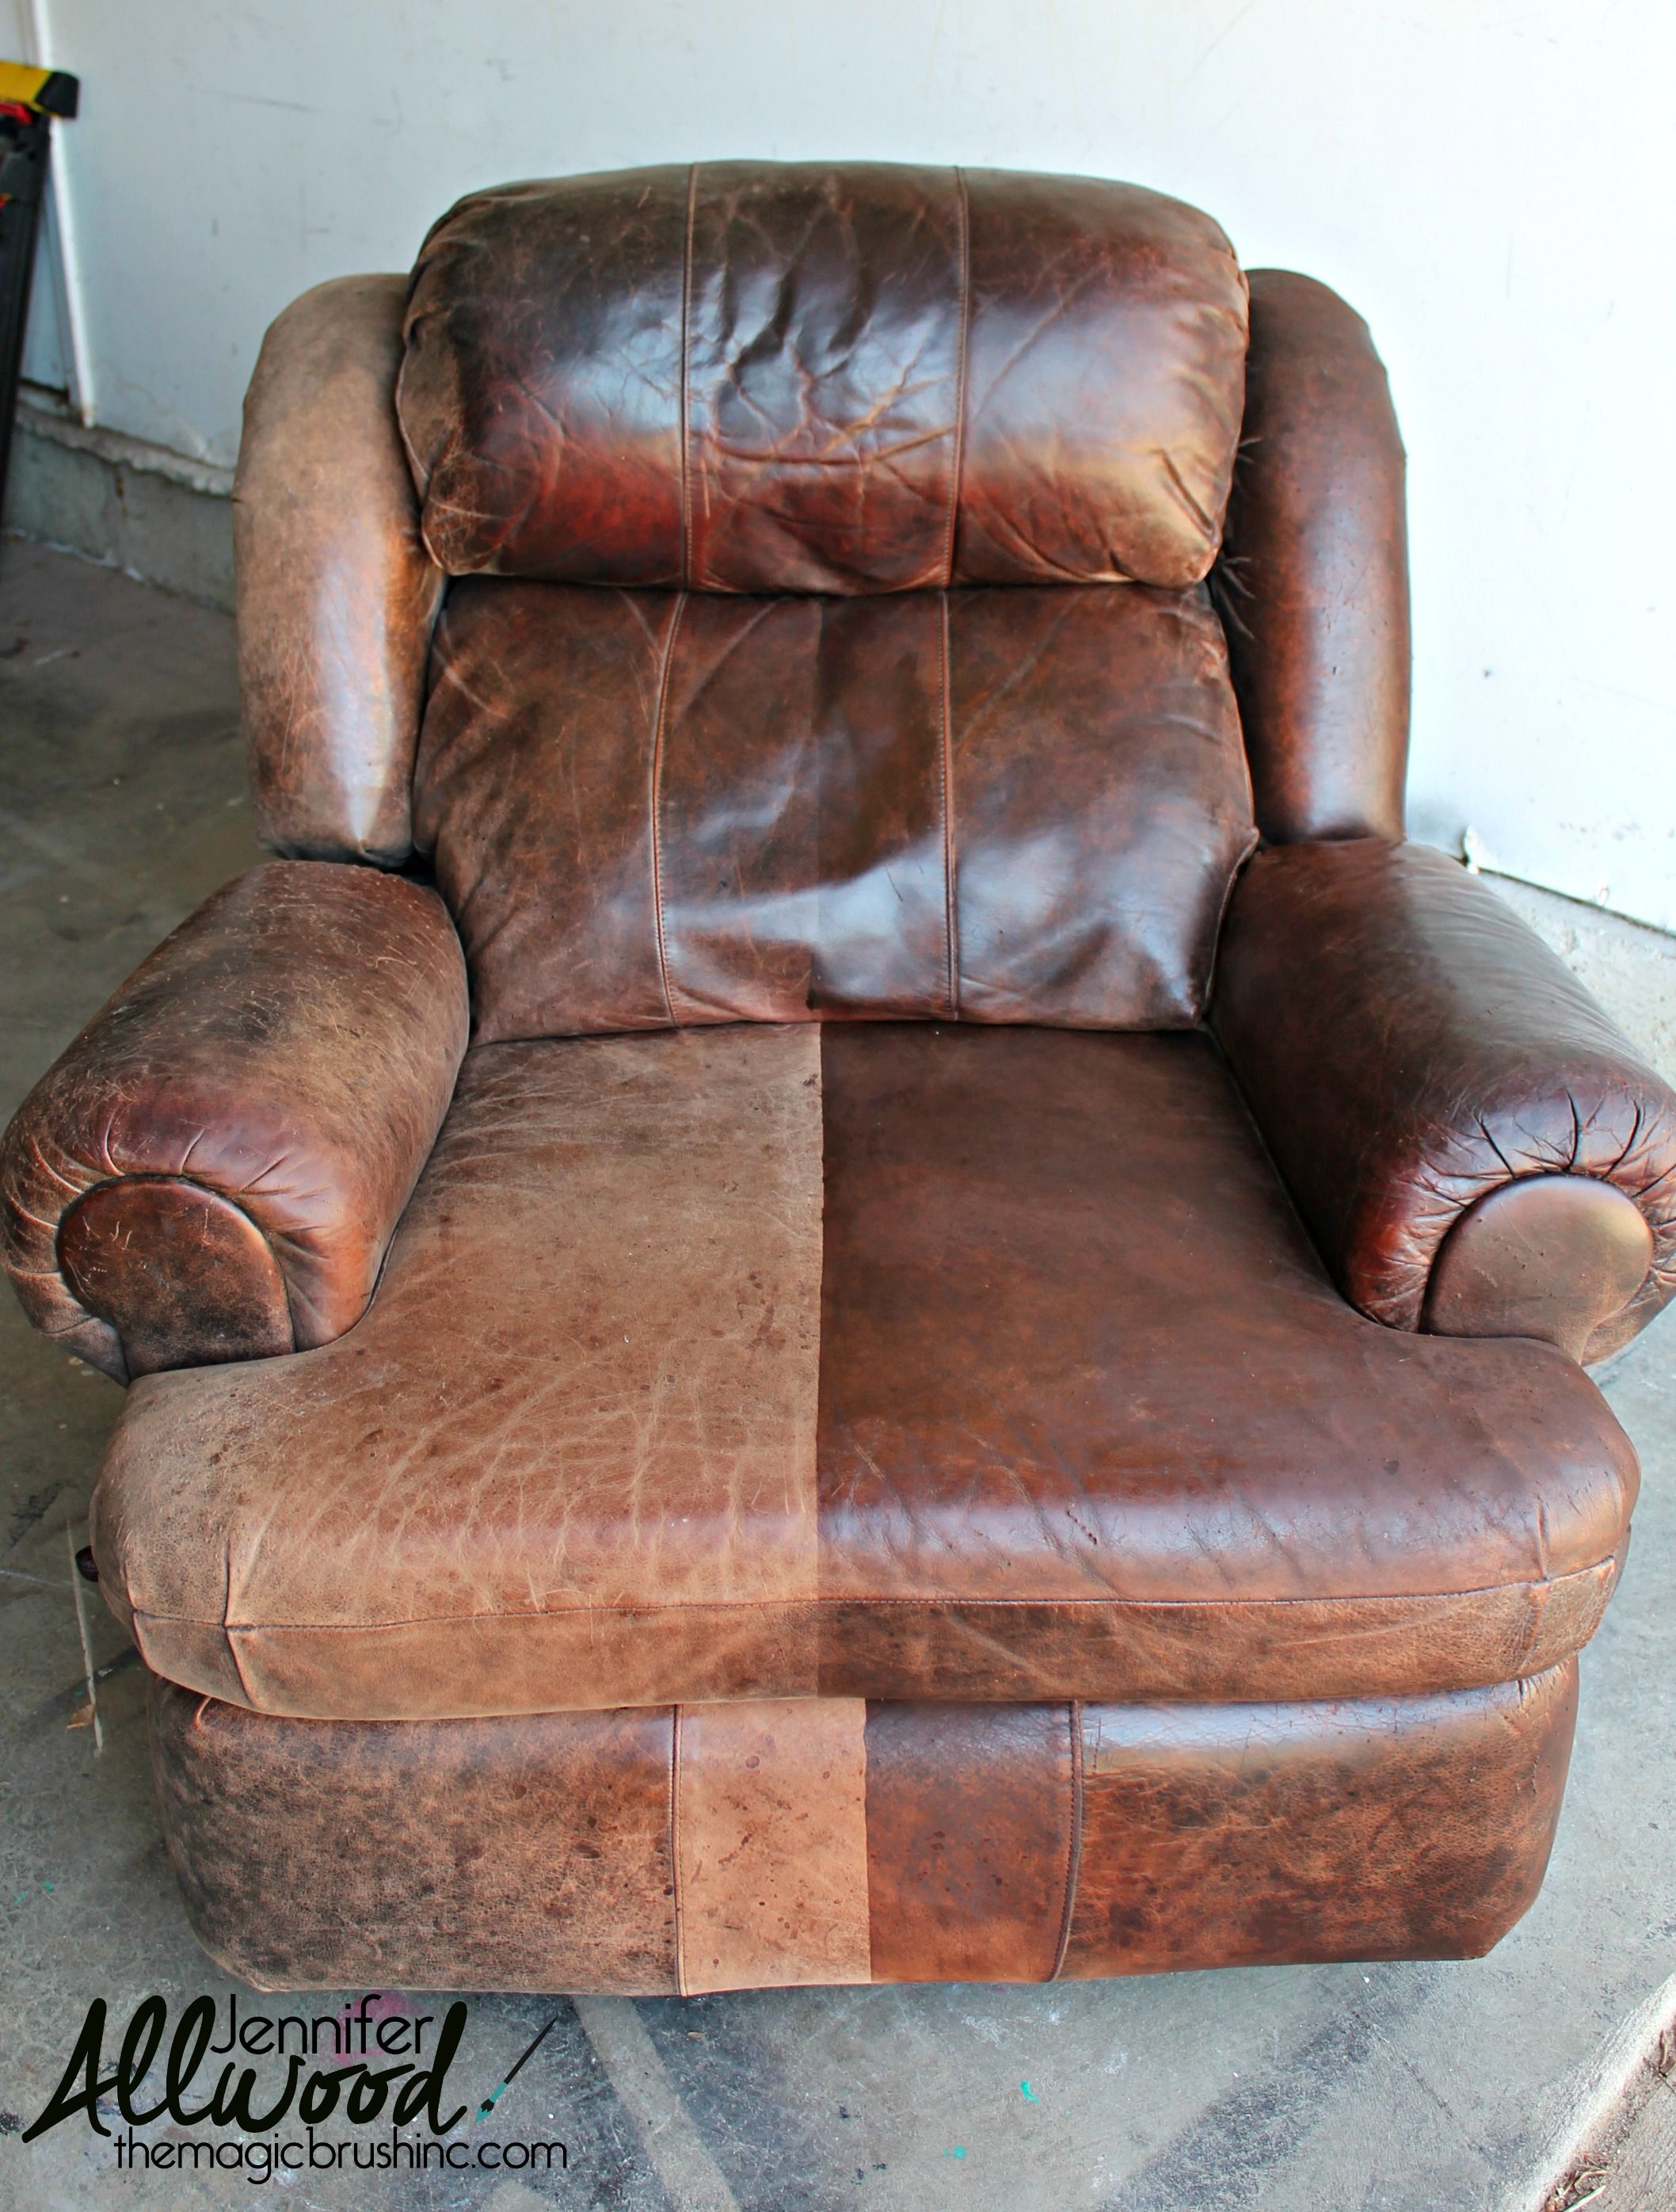 Sofa Leather Repair Toronto Leather Paint Diy Painted Restored Furniture Painting